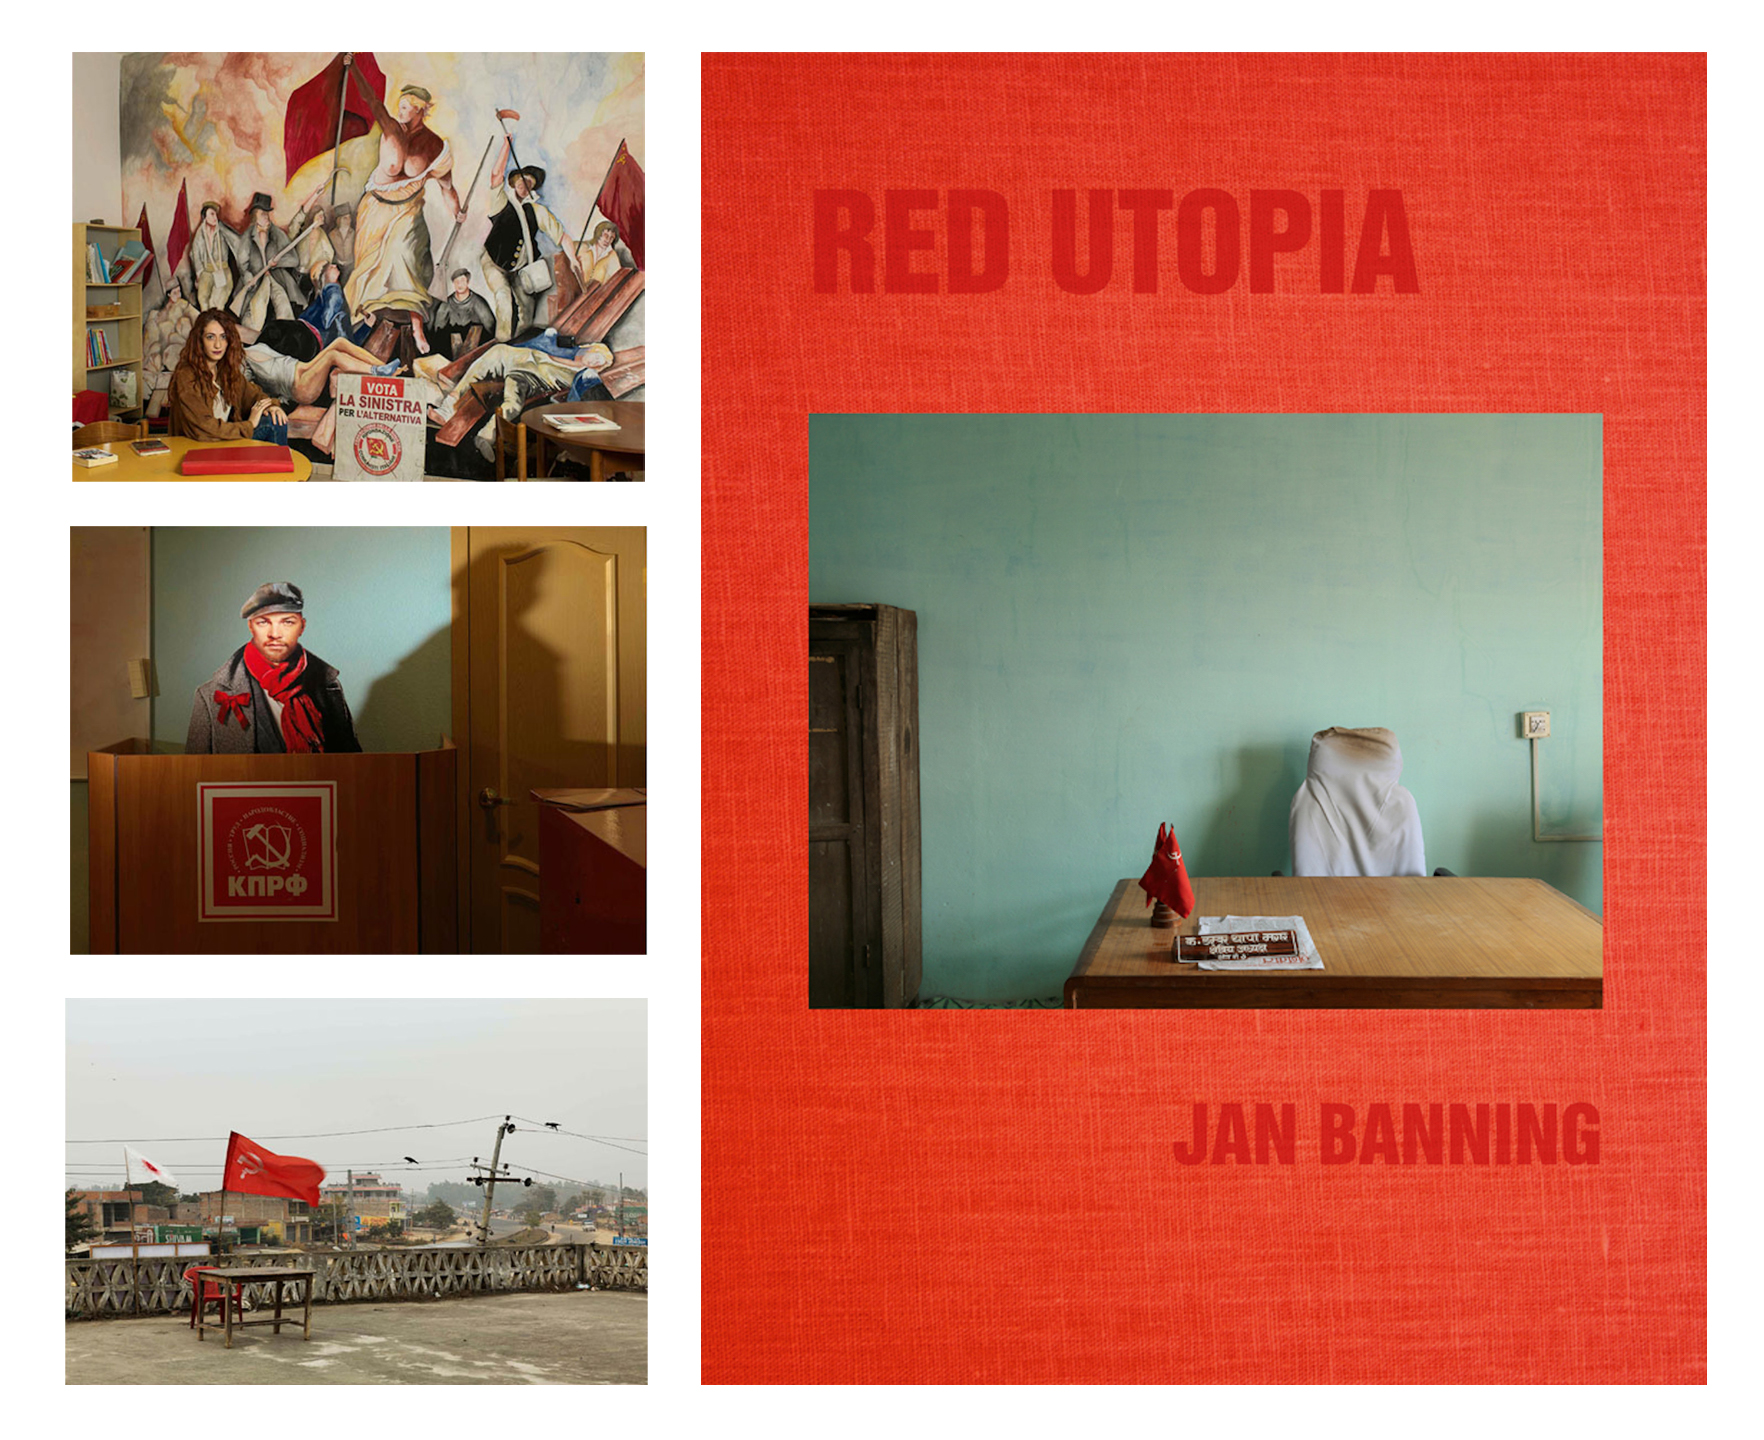 Jan Banning: Red Utopia, Special Limited Edition (with 3 Prints)